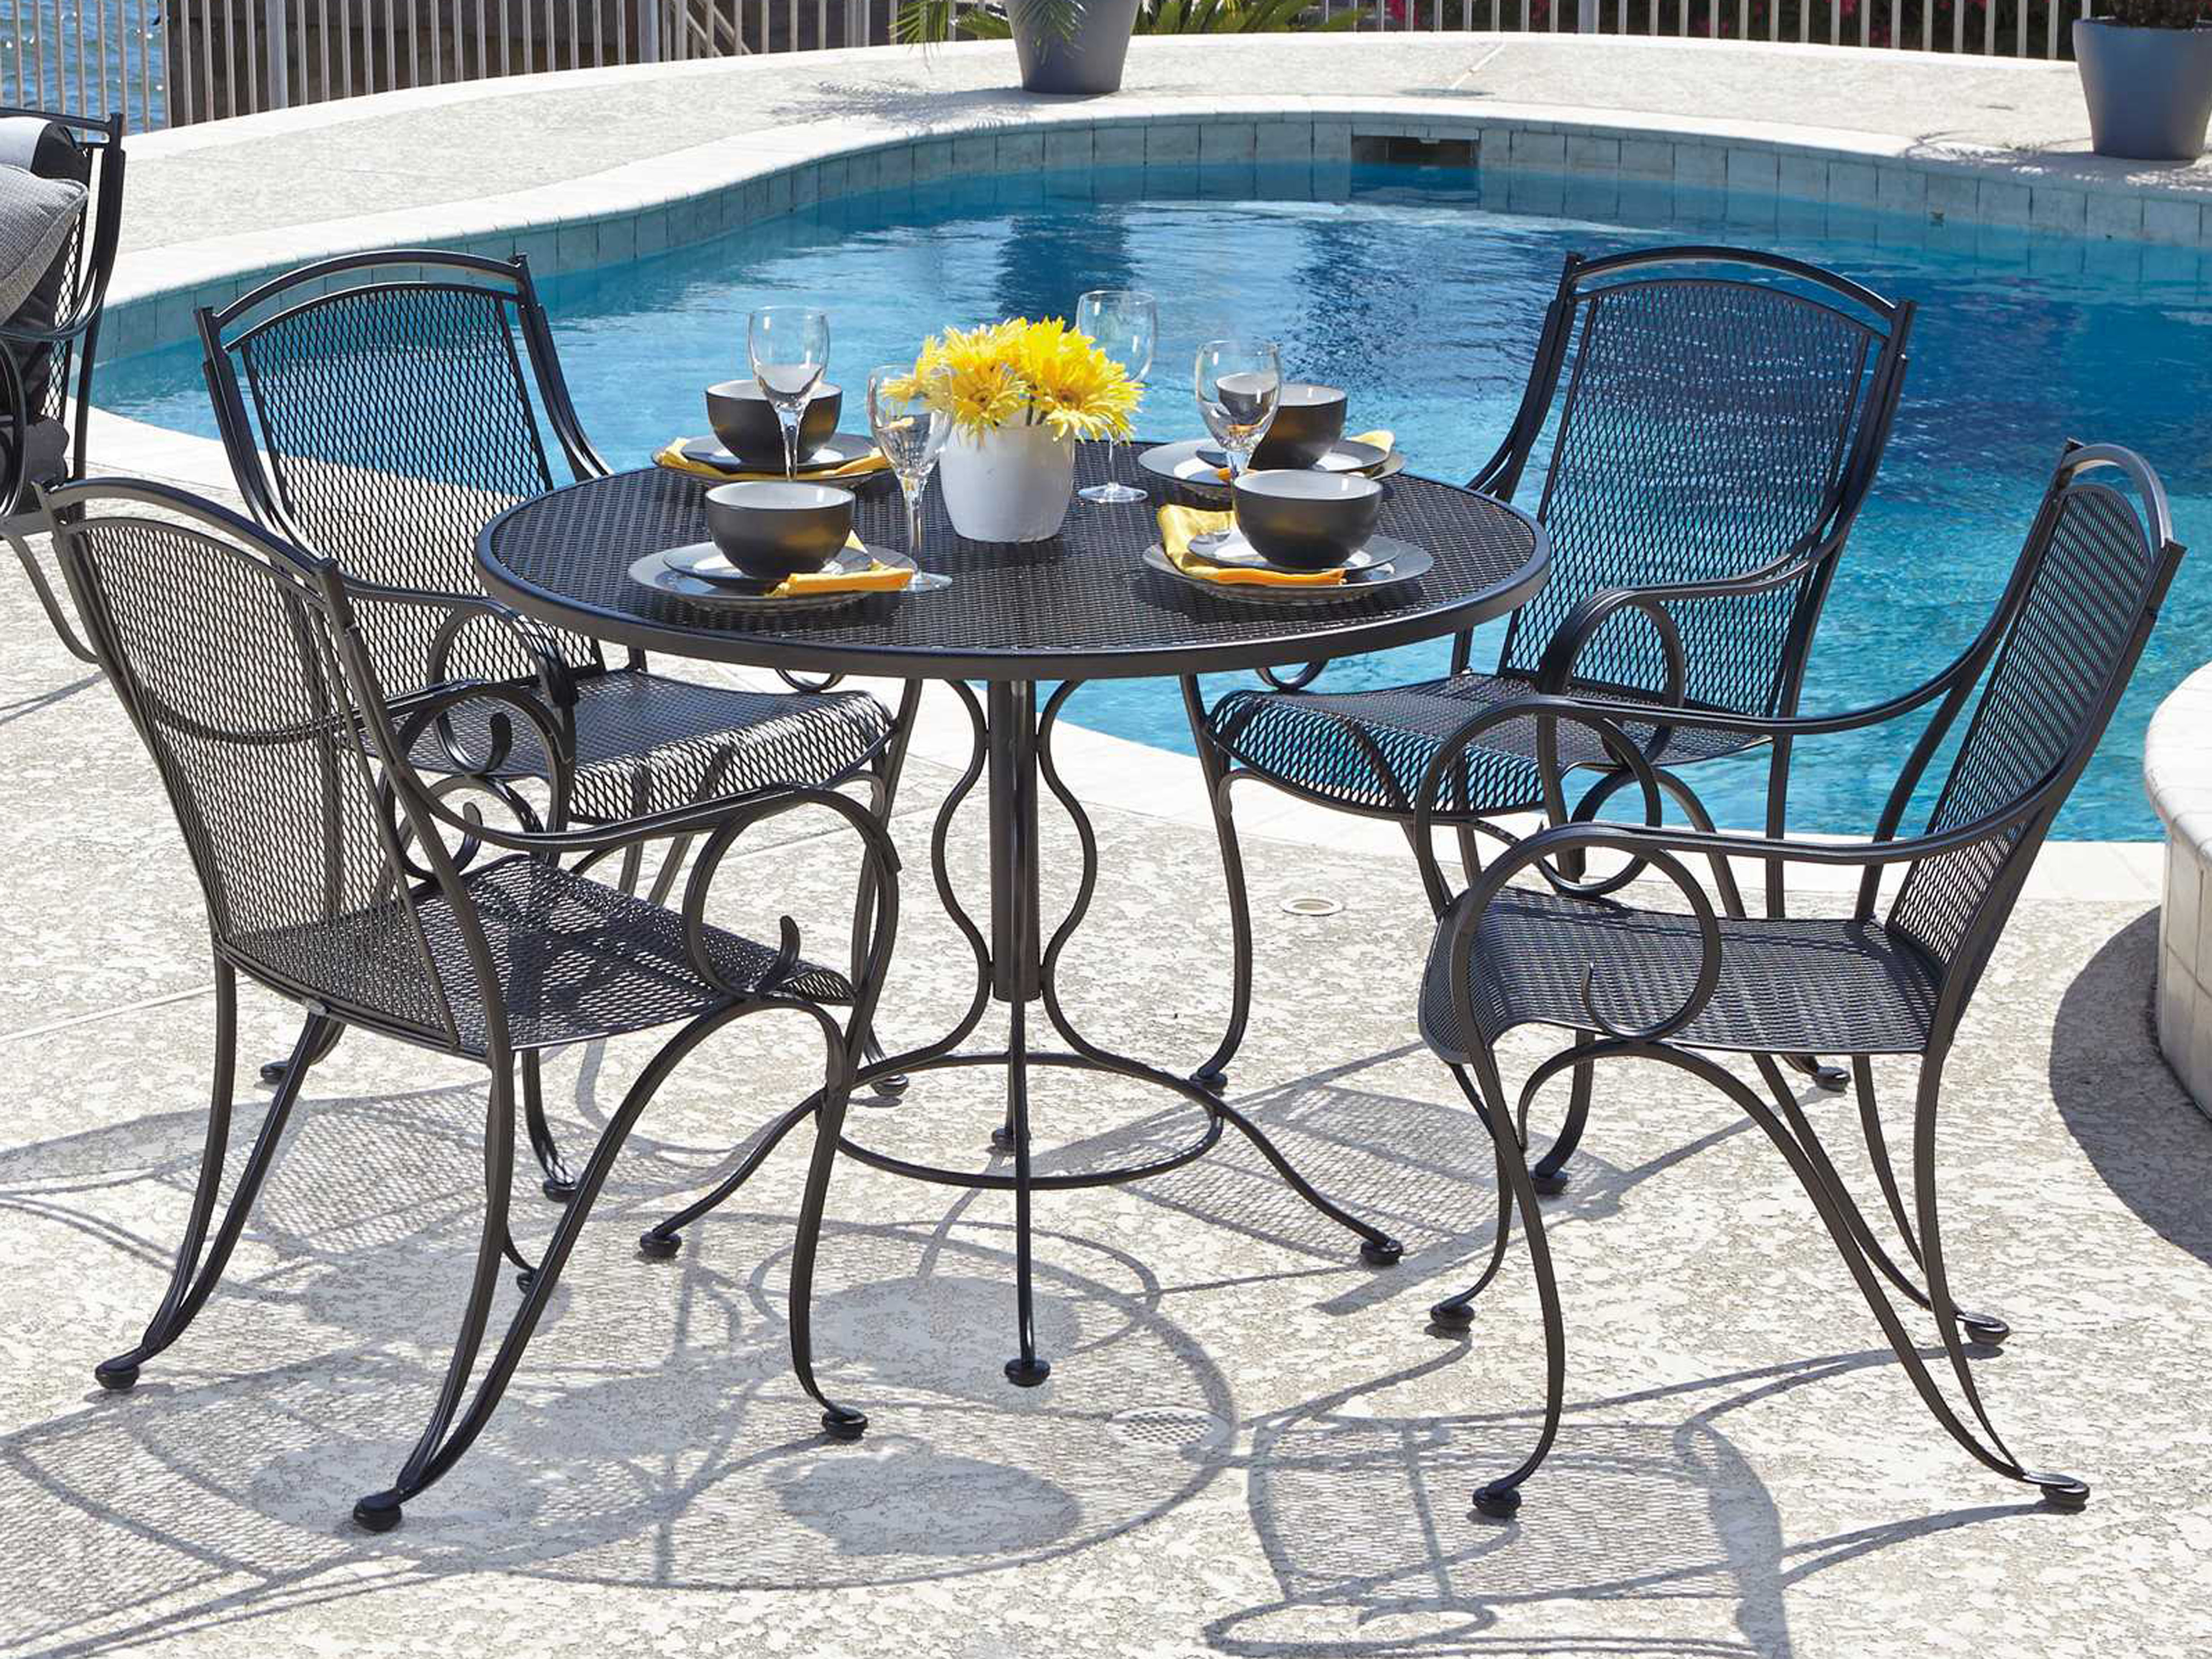 5303147483e4 ... Woodard Mesh Wrought Iron 48 Round Curved Legs Table with Umbrella Hole  190137